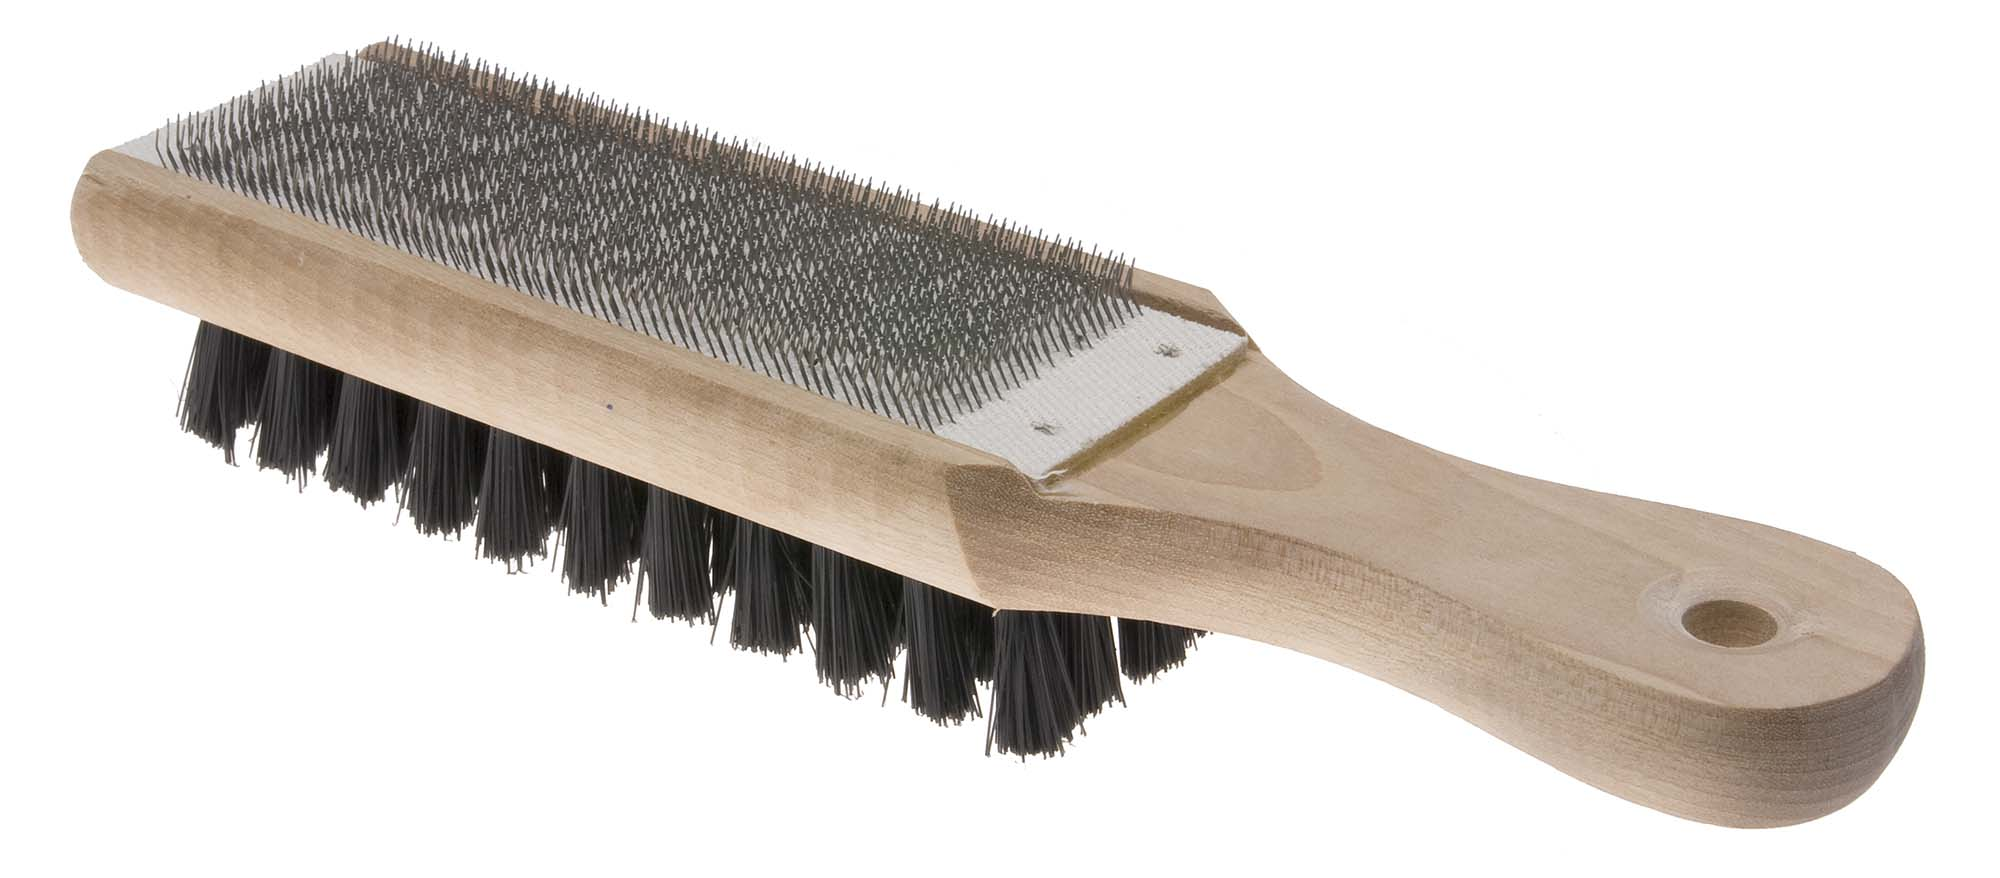 Lutz 20 File Card and Brush